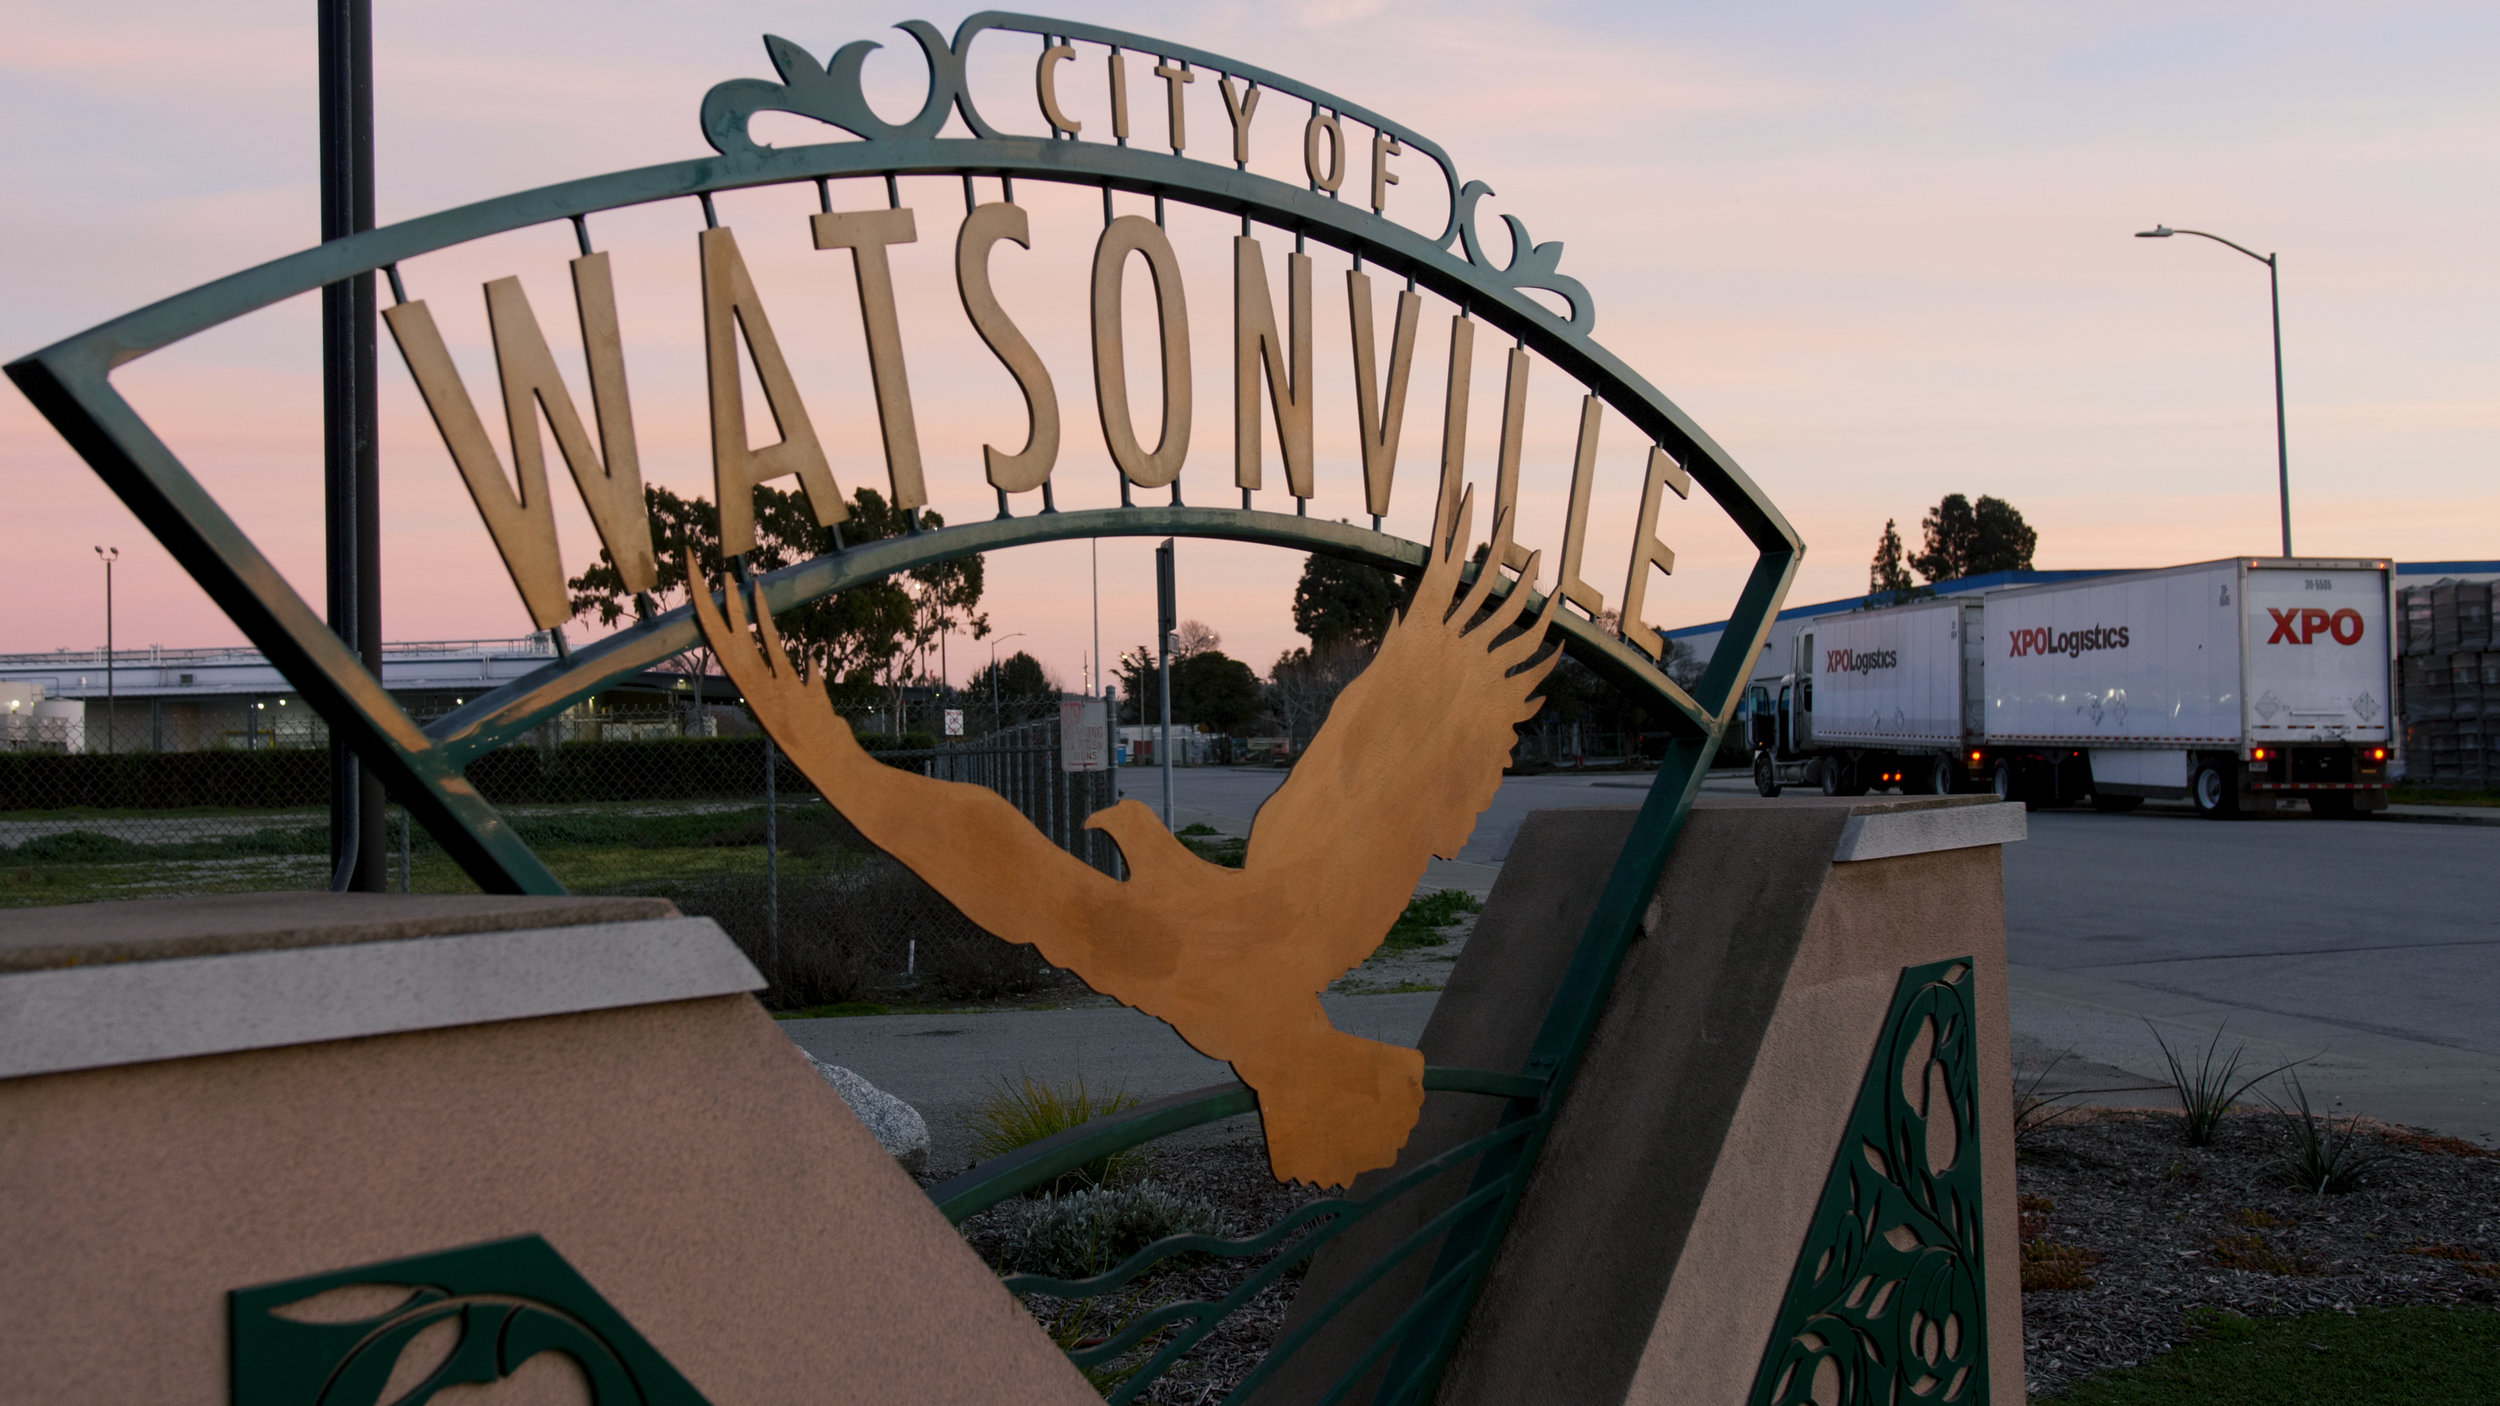 Watsonville Sign 2.jpg